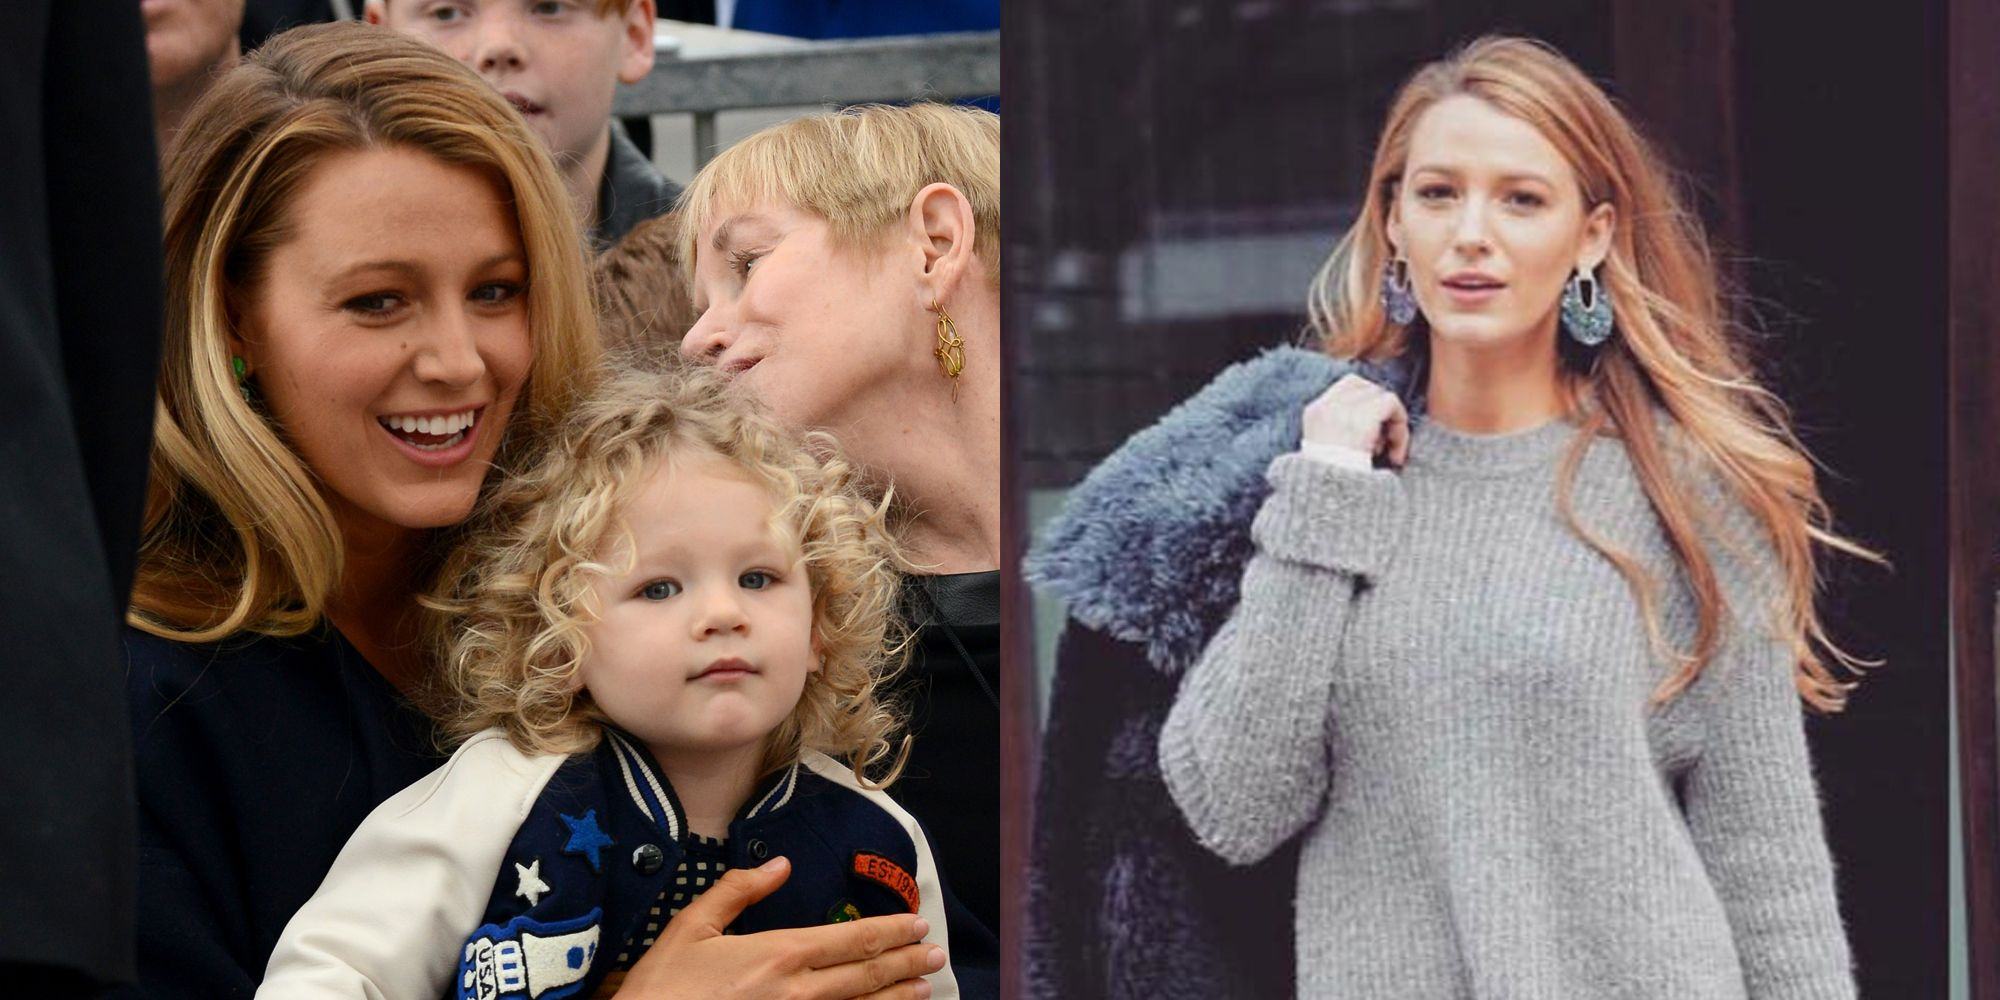 d96da7b58c5 Blake Lively s Daughter on Blake s No-Pants Sweater Outfit - James Reynolds  Reaction to Blake Valentine s Day Outfit